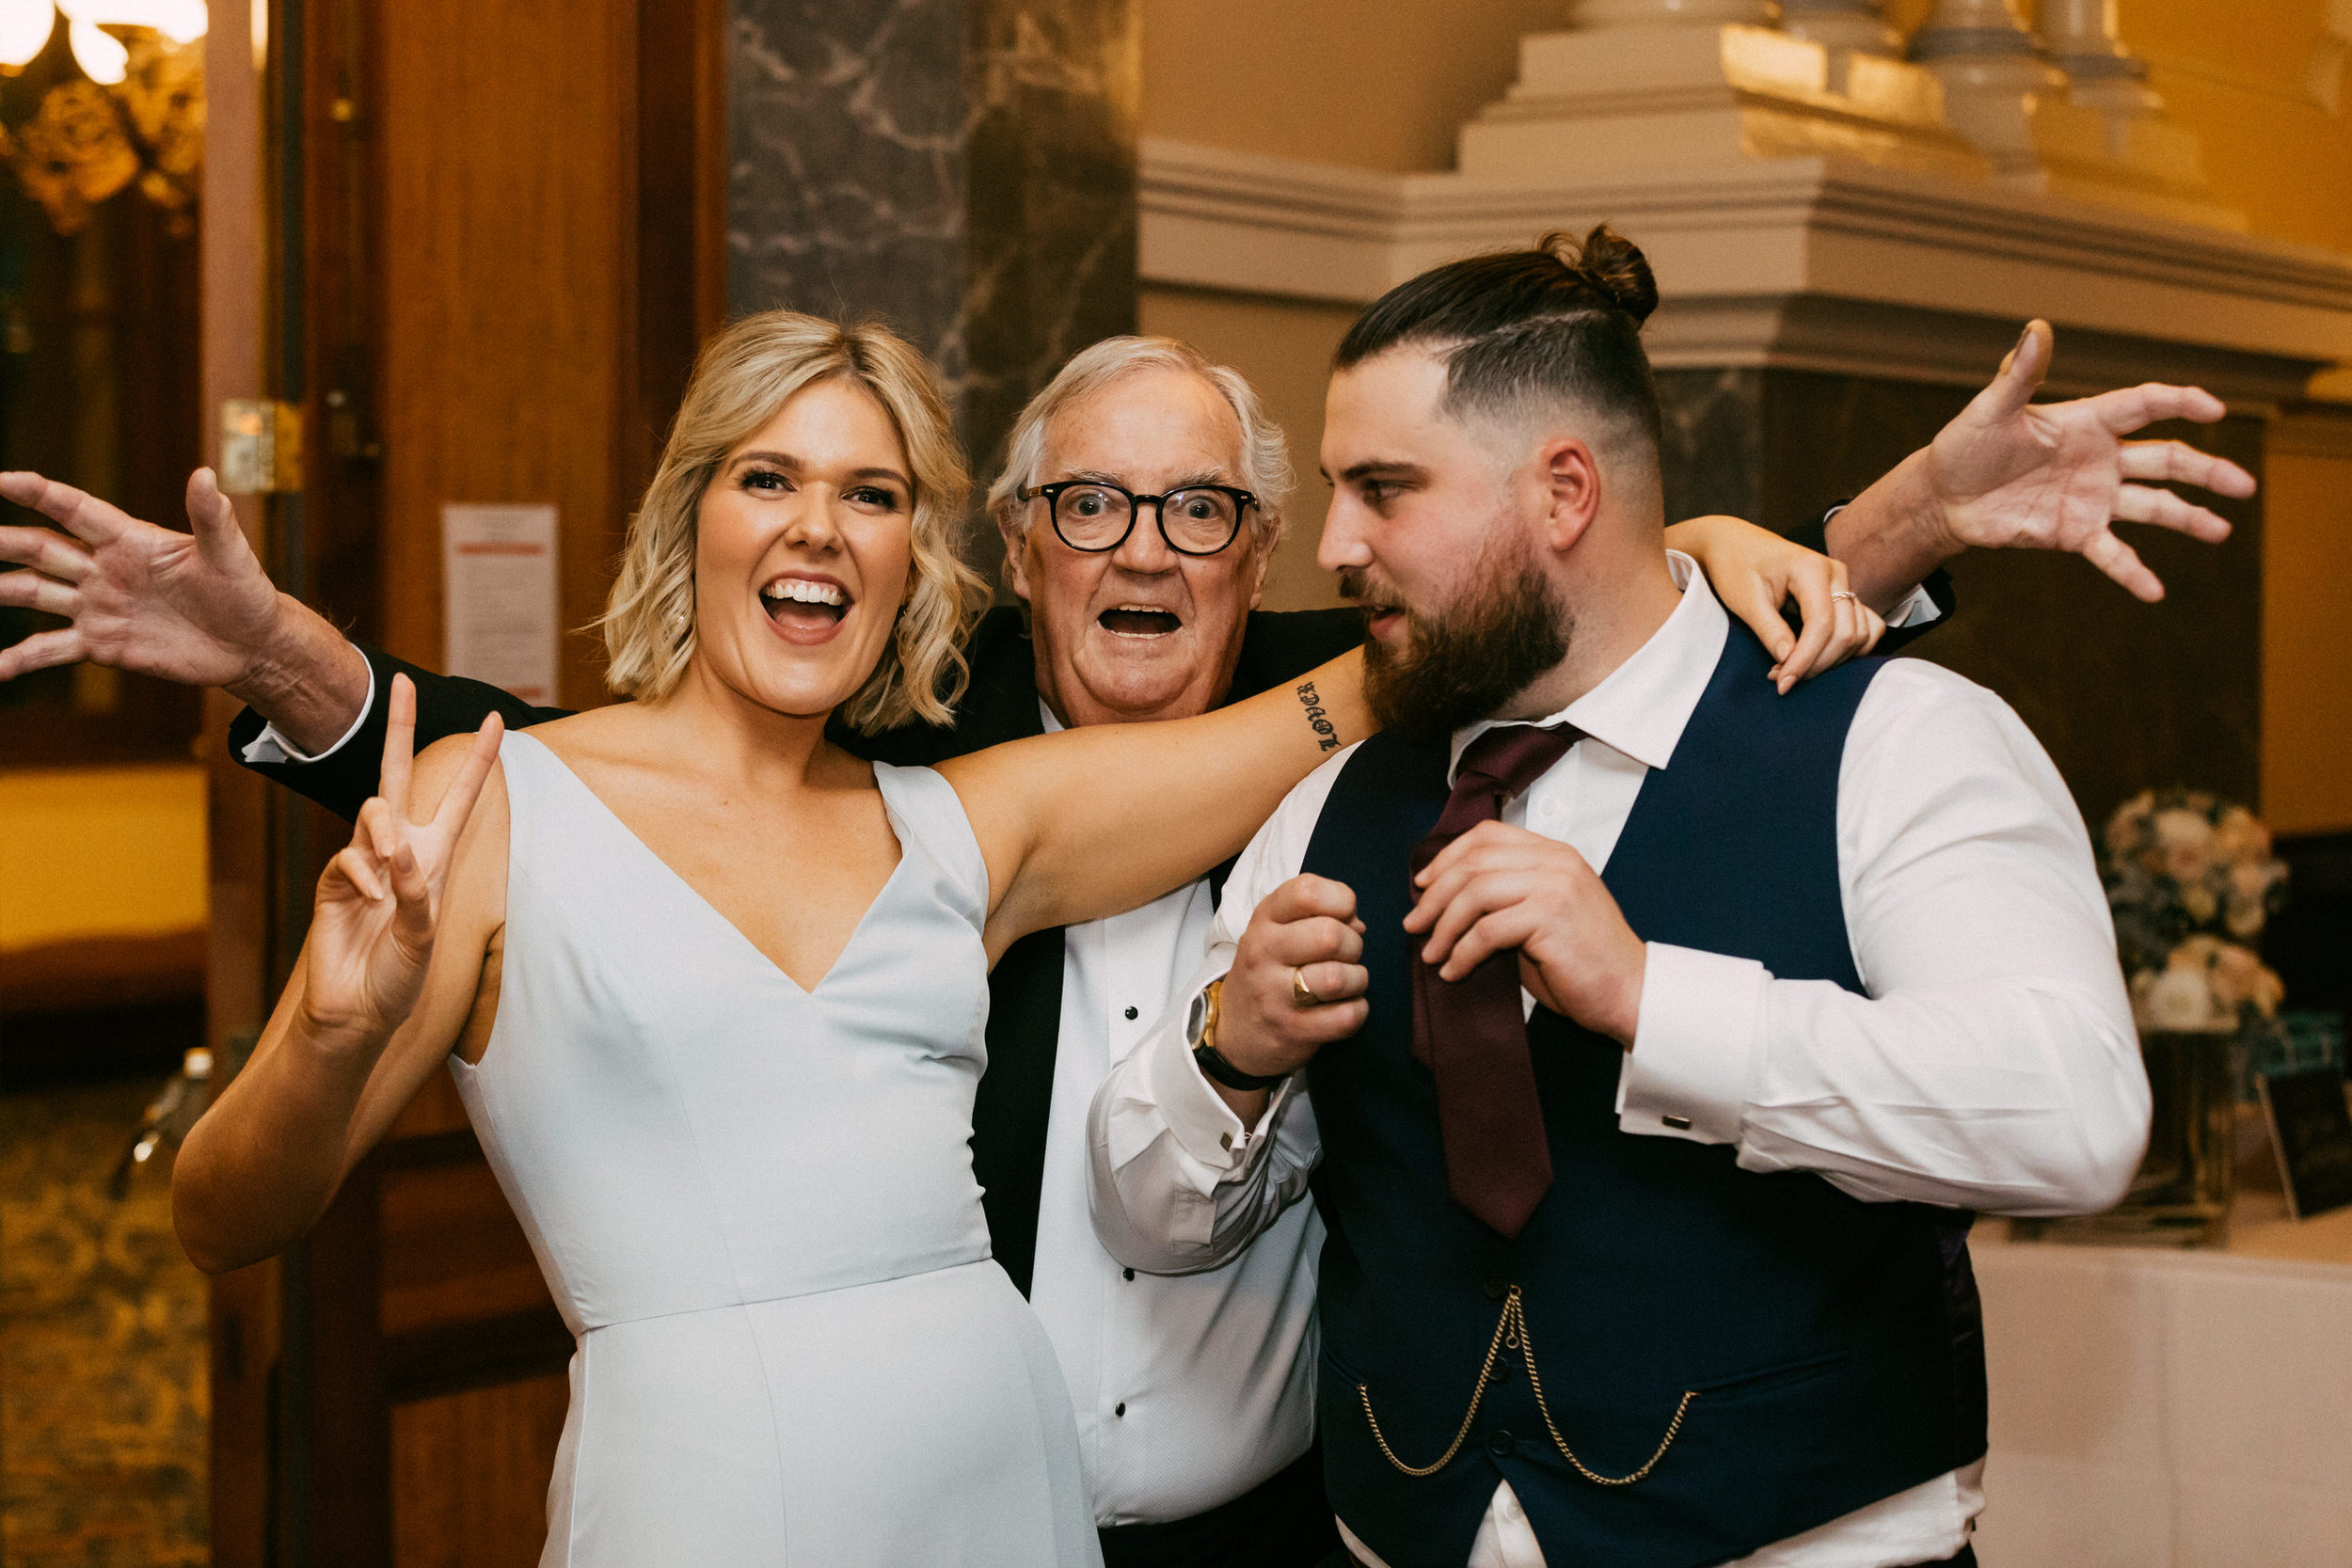 Adelaide Wedding 2019 175.jpg